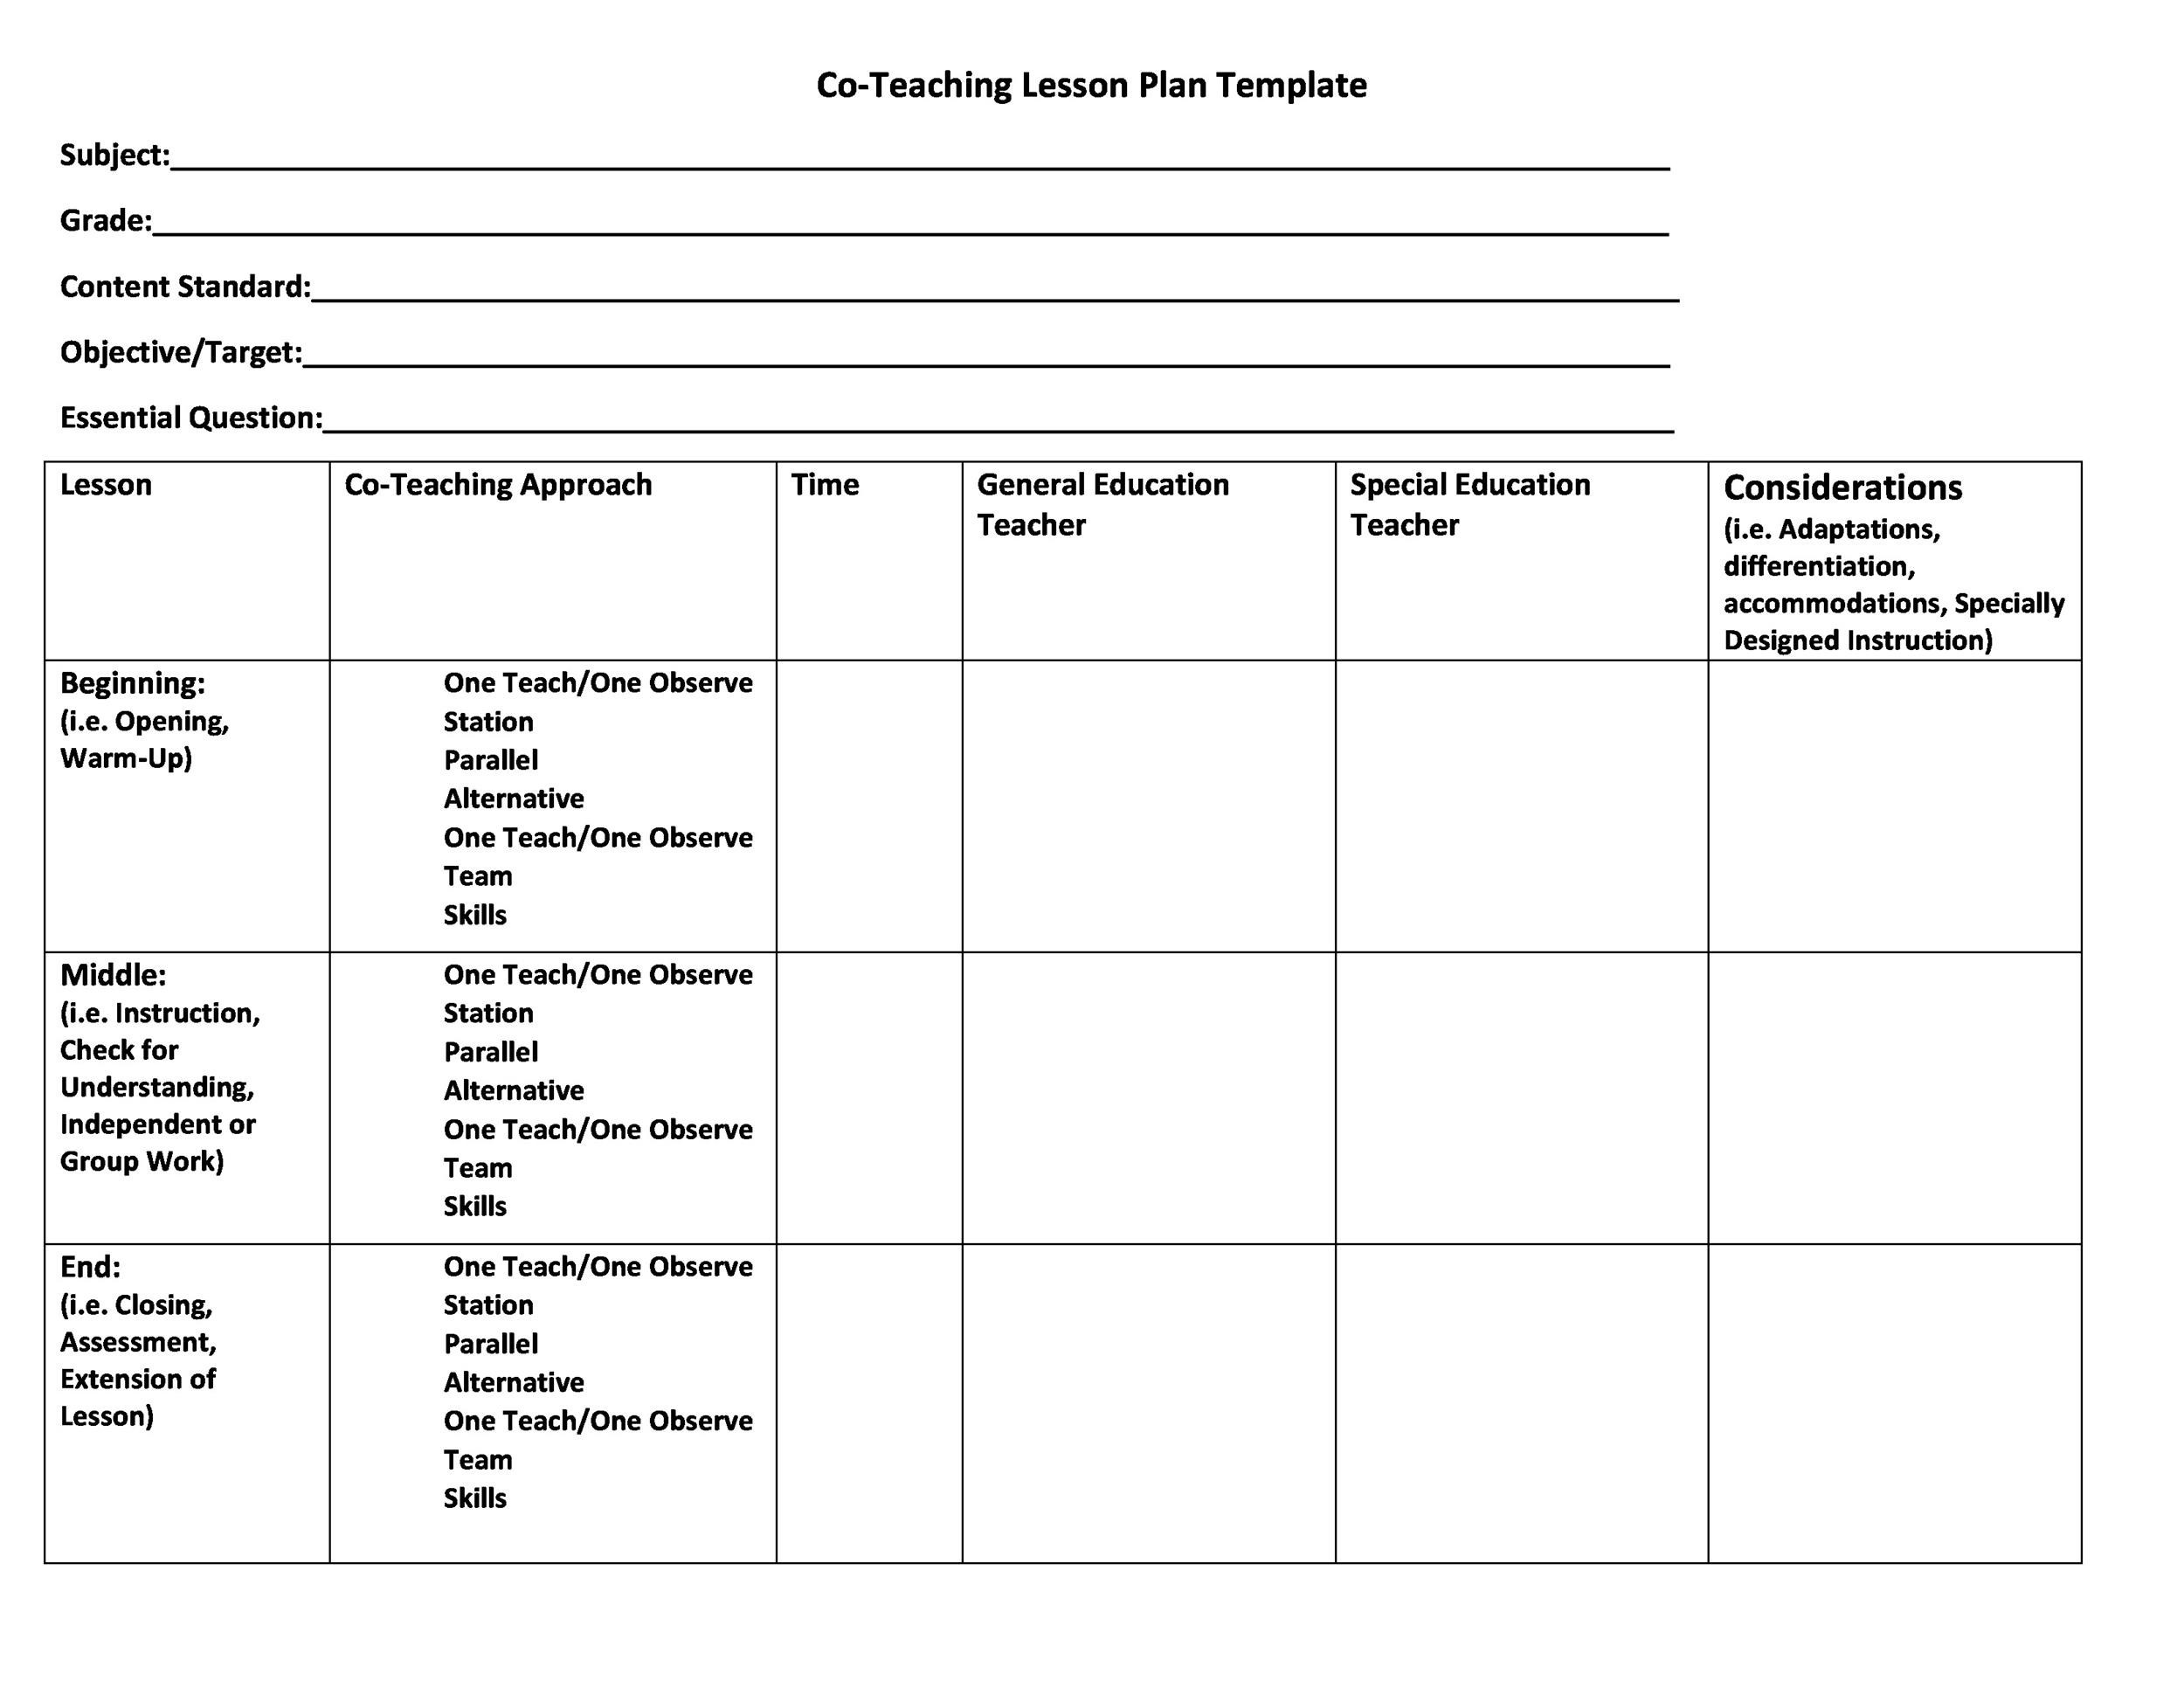 44 FREE Lesson Plan Templates [Common Core, Preschool, Weekly]